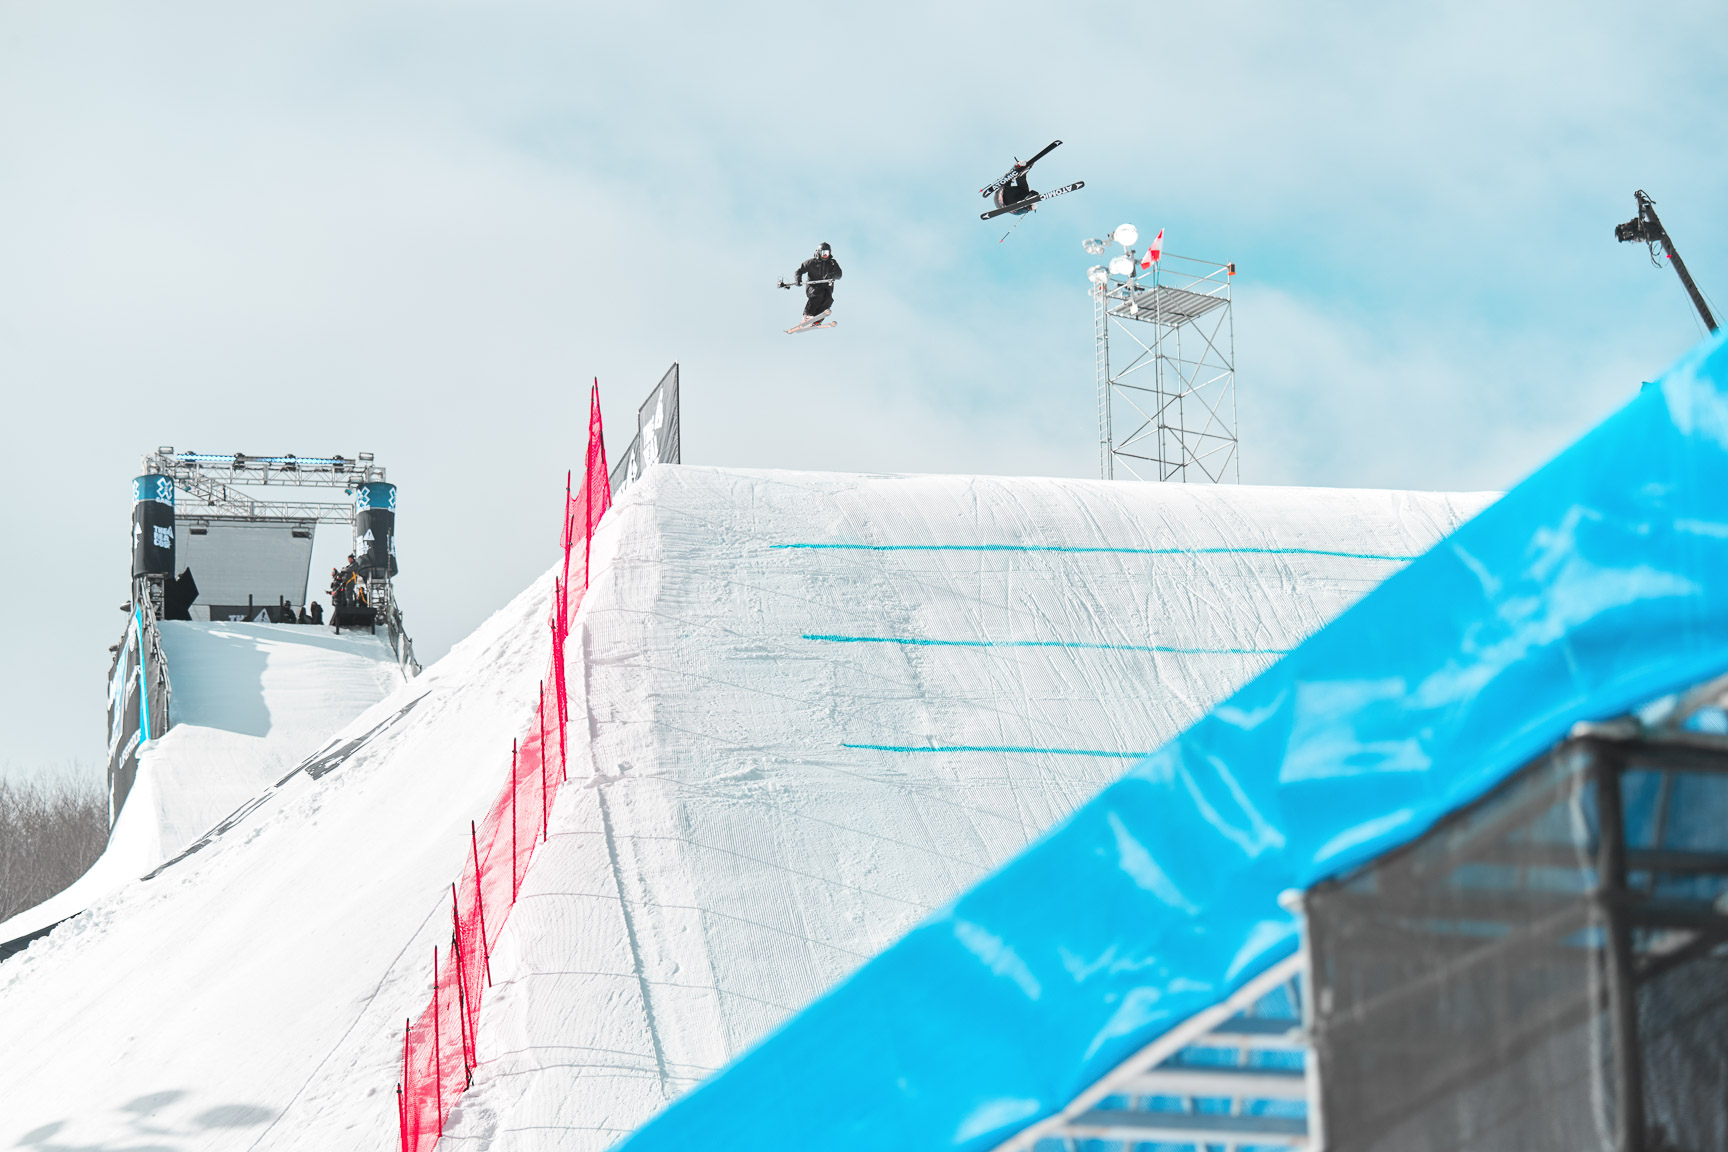 Tess Ledeux, Women's Ski Big Air Final